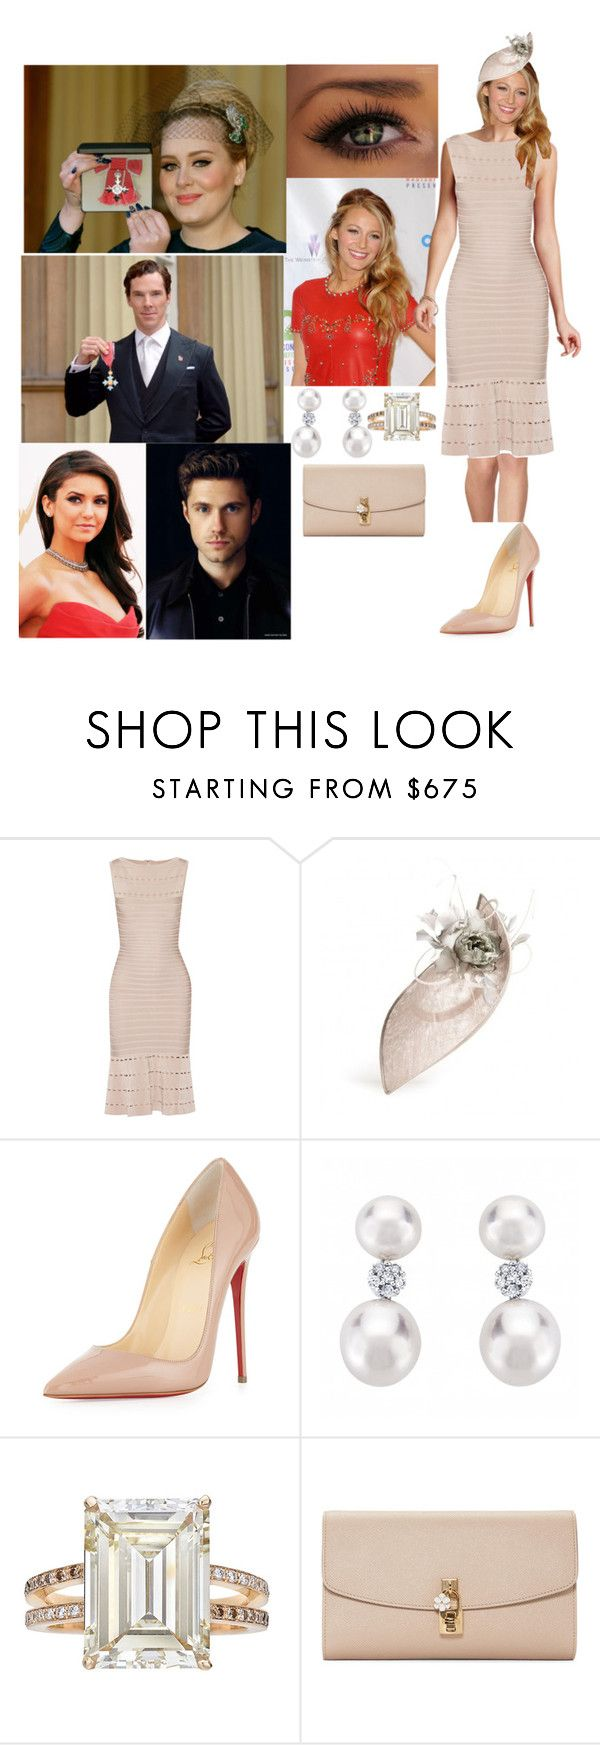 """(READ!!!) Princess Dawn at Buckingham Palace to see Elena Dobrev and William 'Tripp' Van der bilt III o get there CBE and MBE"" by dawn-wales ❤ liked on Polyvore featuring Isabel Marant, Hervé Léger, Christian Louboutin, Betteridge and Dolce&Gabbana"